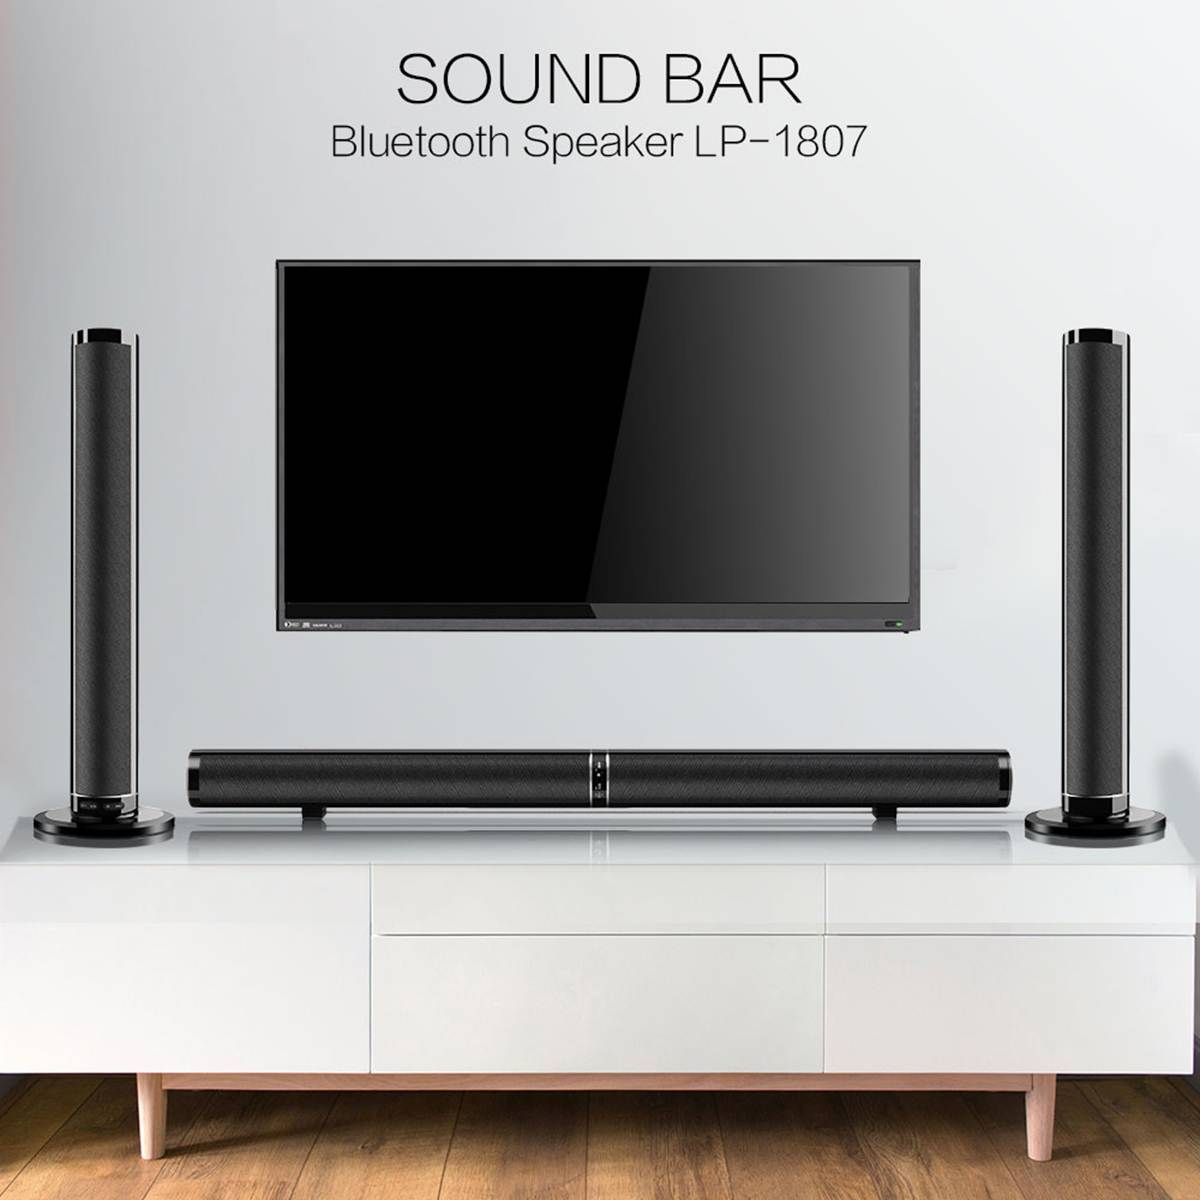 Bluetooth Soundbar 3D Home Theater Sound System Sound Bar Wireless Speaker For TV AUX HDMI ARC RCA Optical Input bluetooth soundbar 3d home theater sound system sound bar wireless speaker for tv aux hdmi arc rca optical input